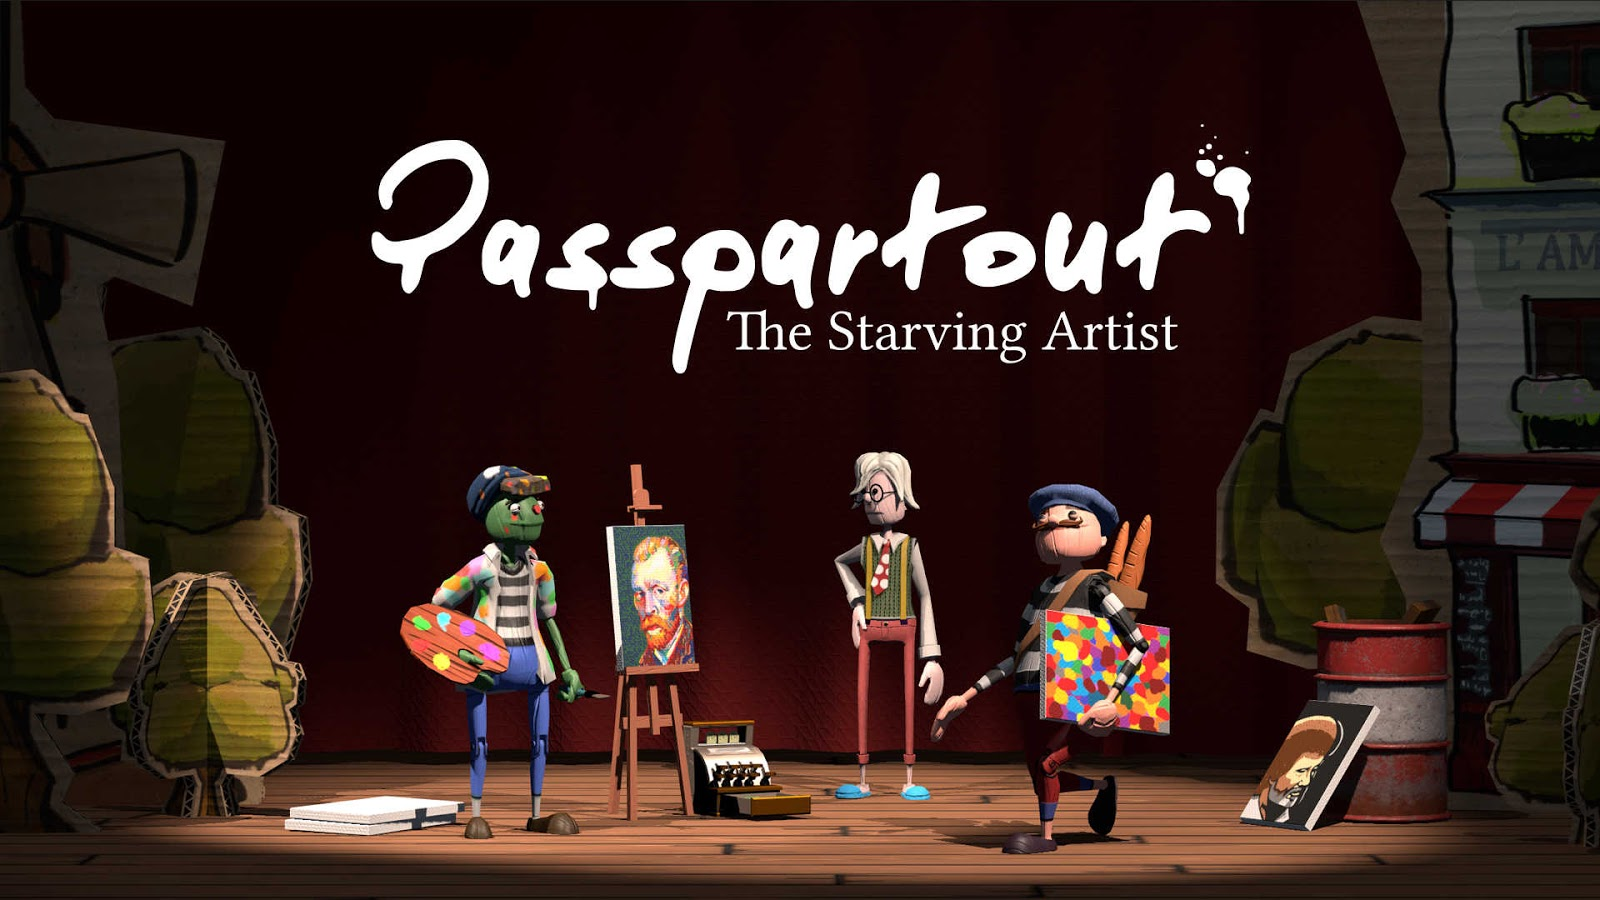 Tải Về Passpartout The Starving Artist Full Crack Google